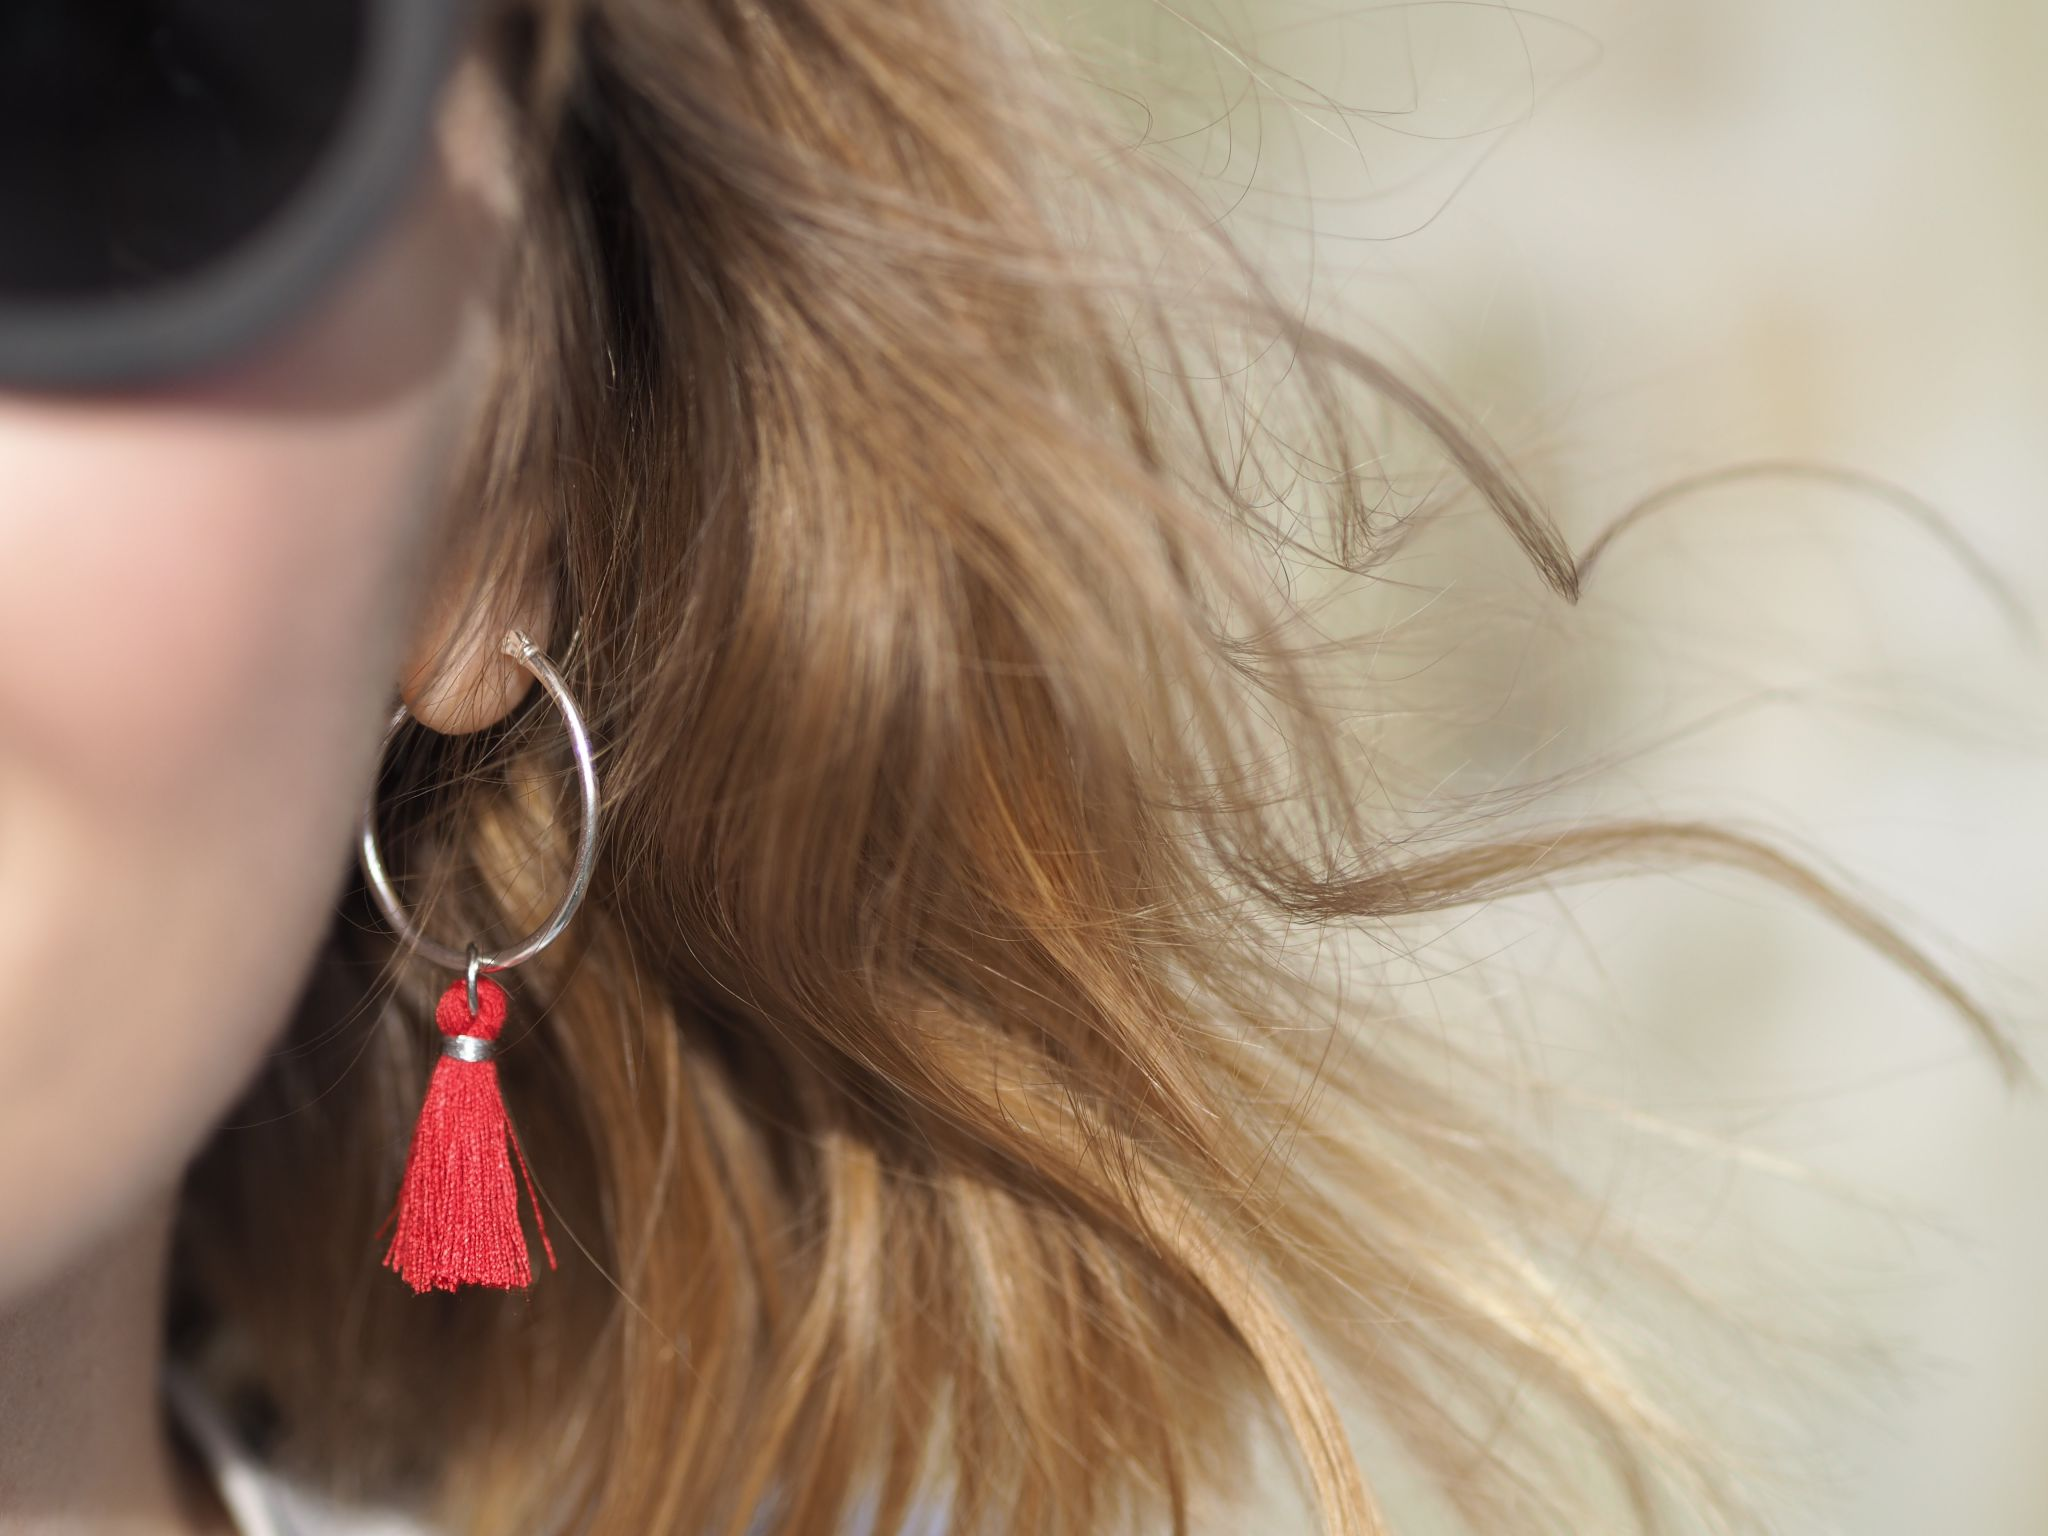 sustainable wooden round sunglasses and red tassel earrings